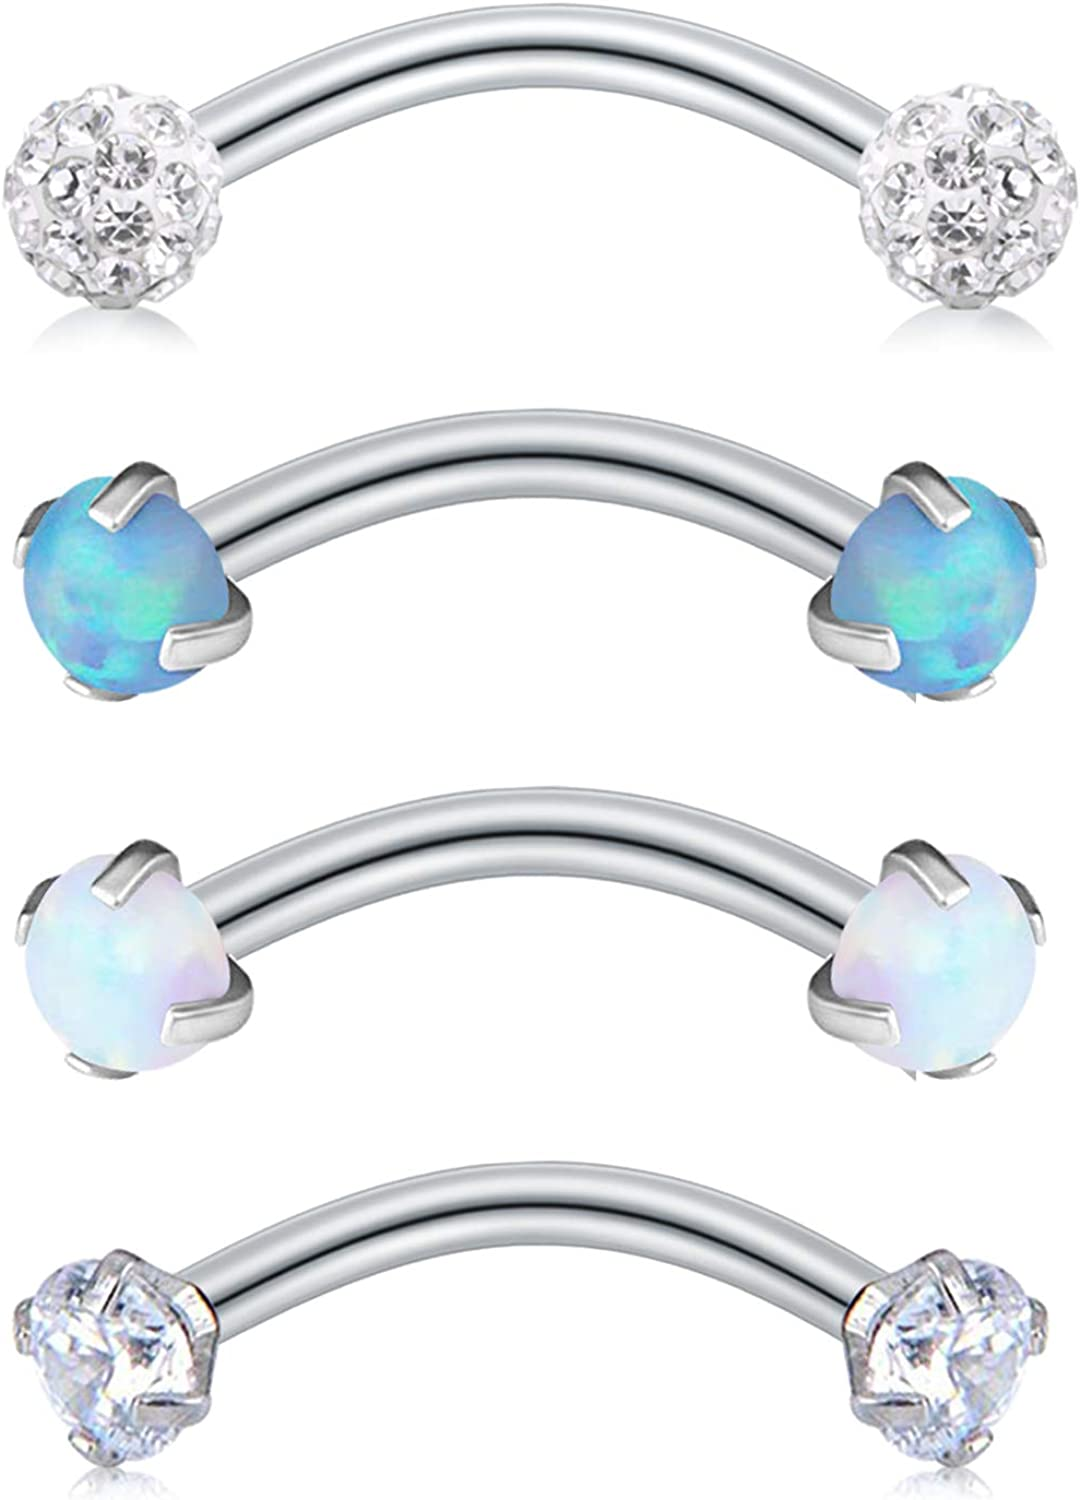 Anicina Eyebrow Rings 16g Curved Barbell Eyebrow Piercing Stainless Steel Daith Rook Earring Piercing Body Jewlery 8mm 10mm